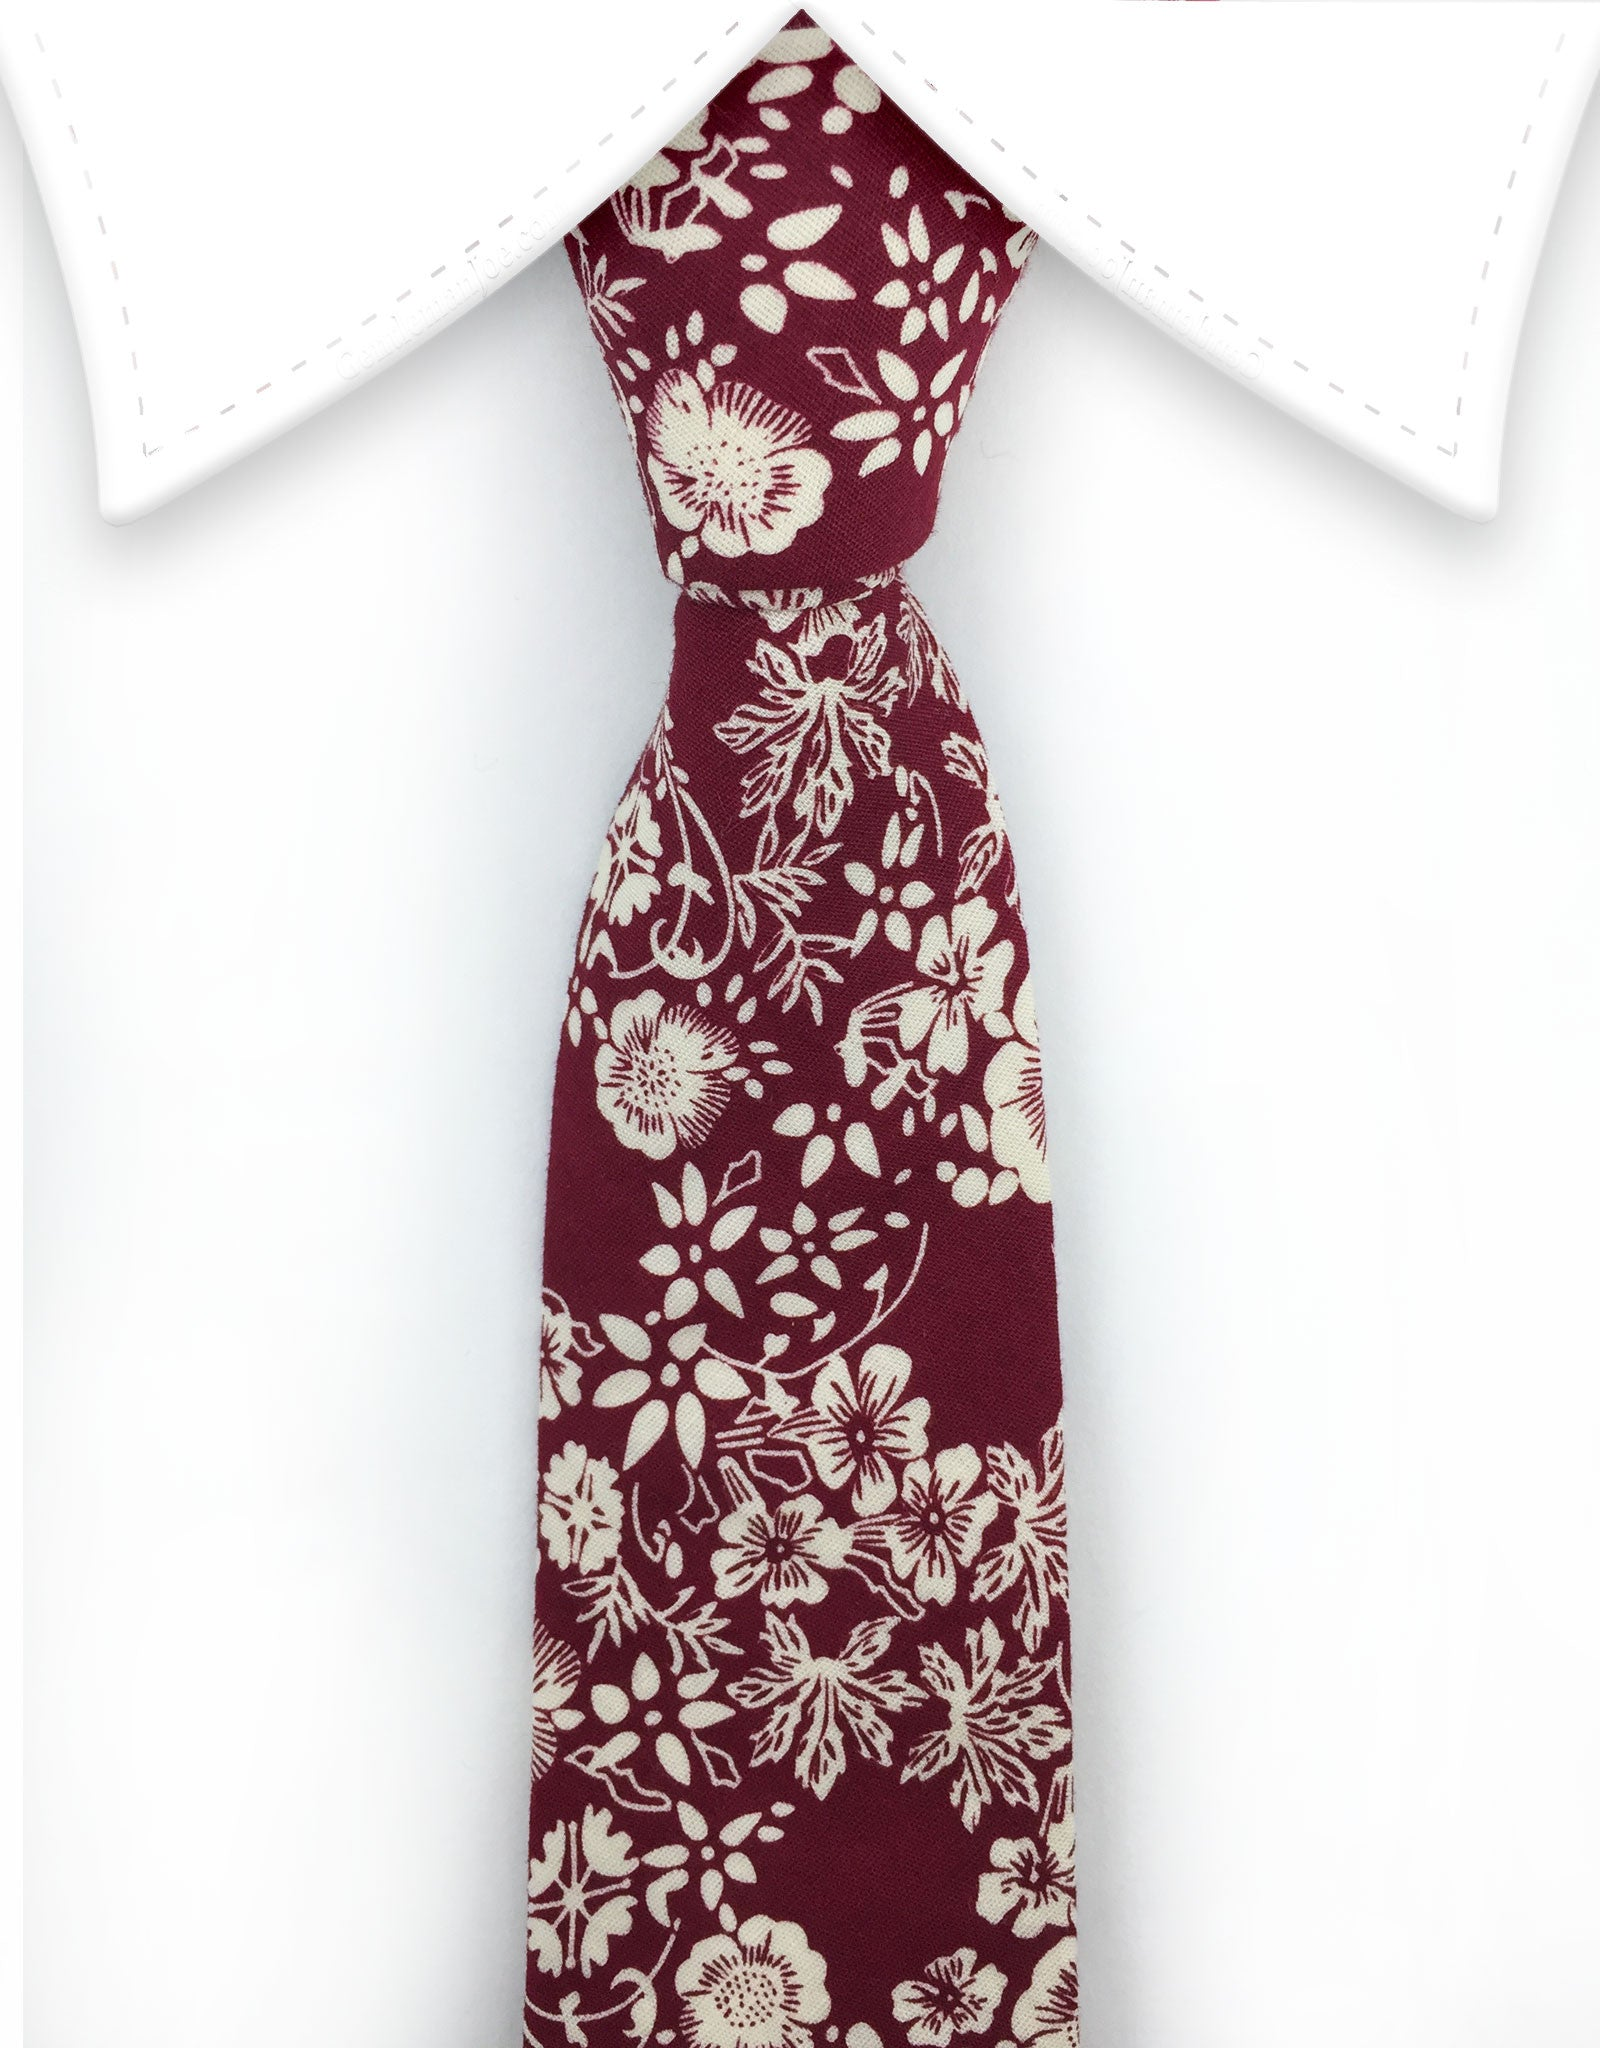 burgundy floral tie with cream flowers